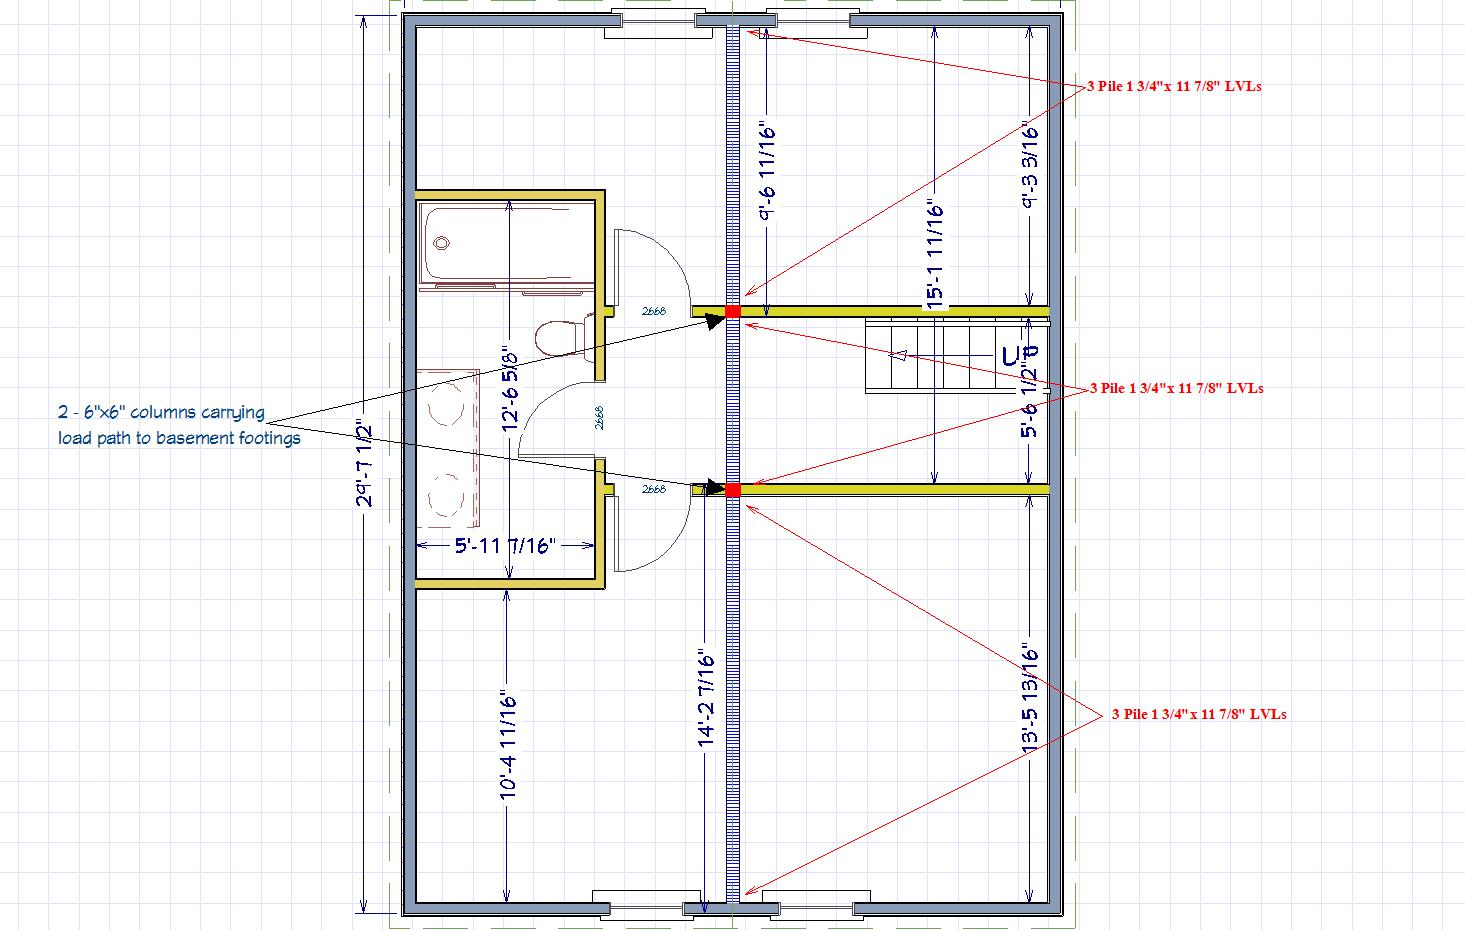 85 shed dormer framing framing a shed dormer with - Dormer window house plans extra personality ...